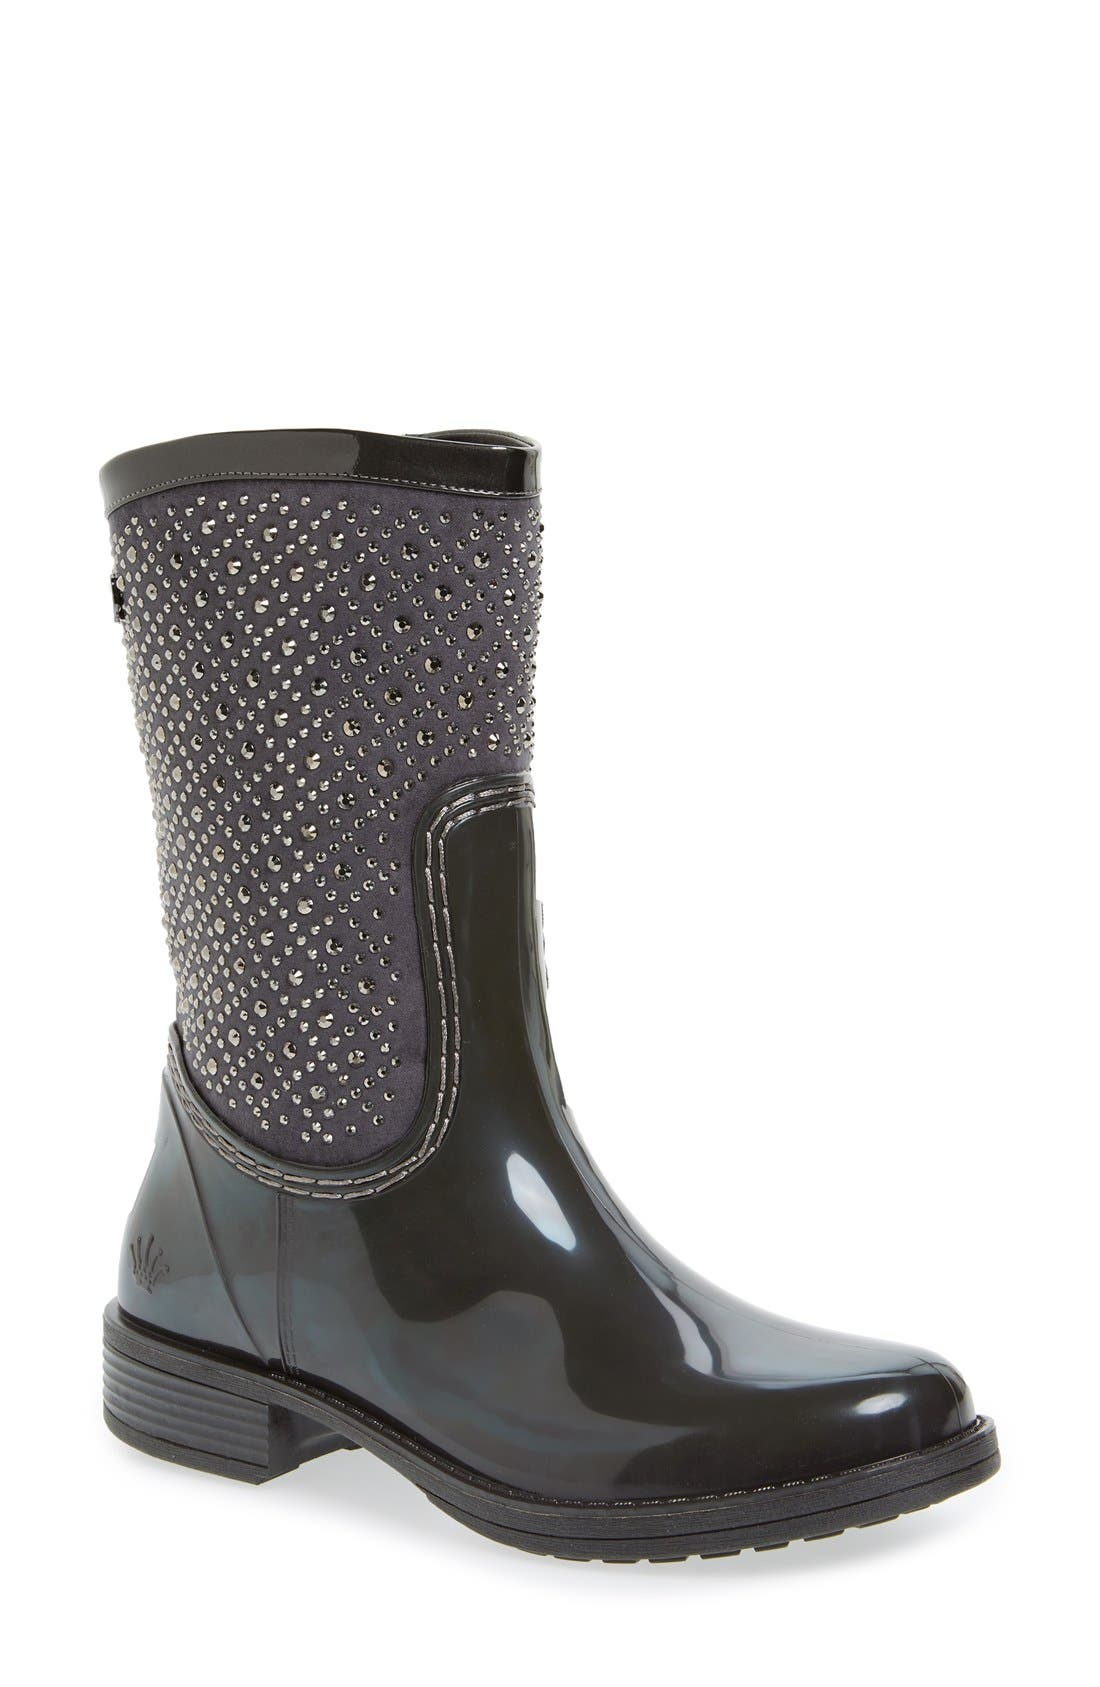 POSH WELLIES 'Cerussite' Crystal Embellished Rain Boot